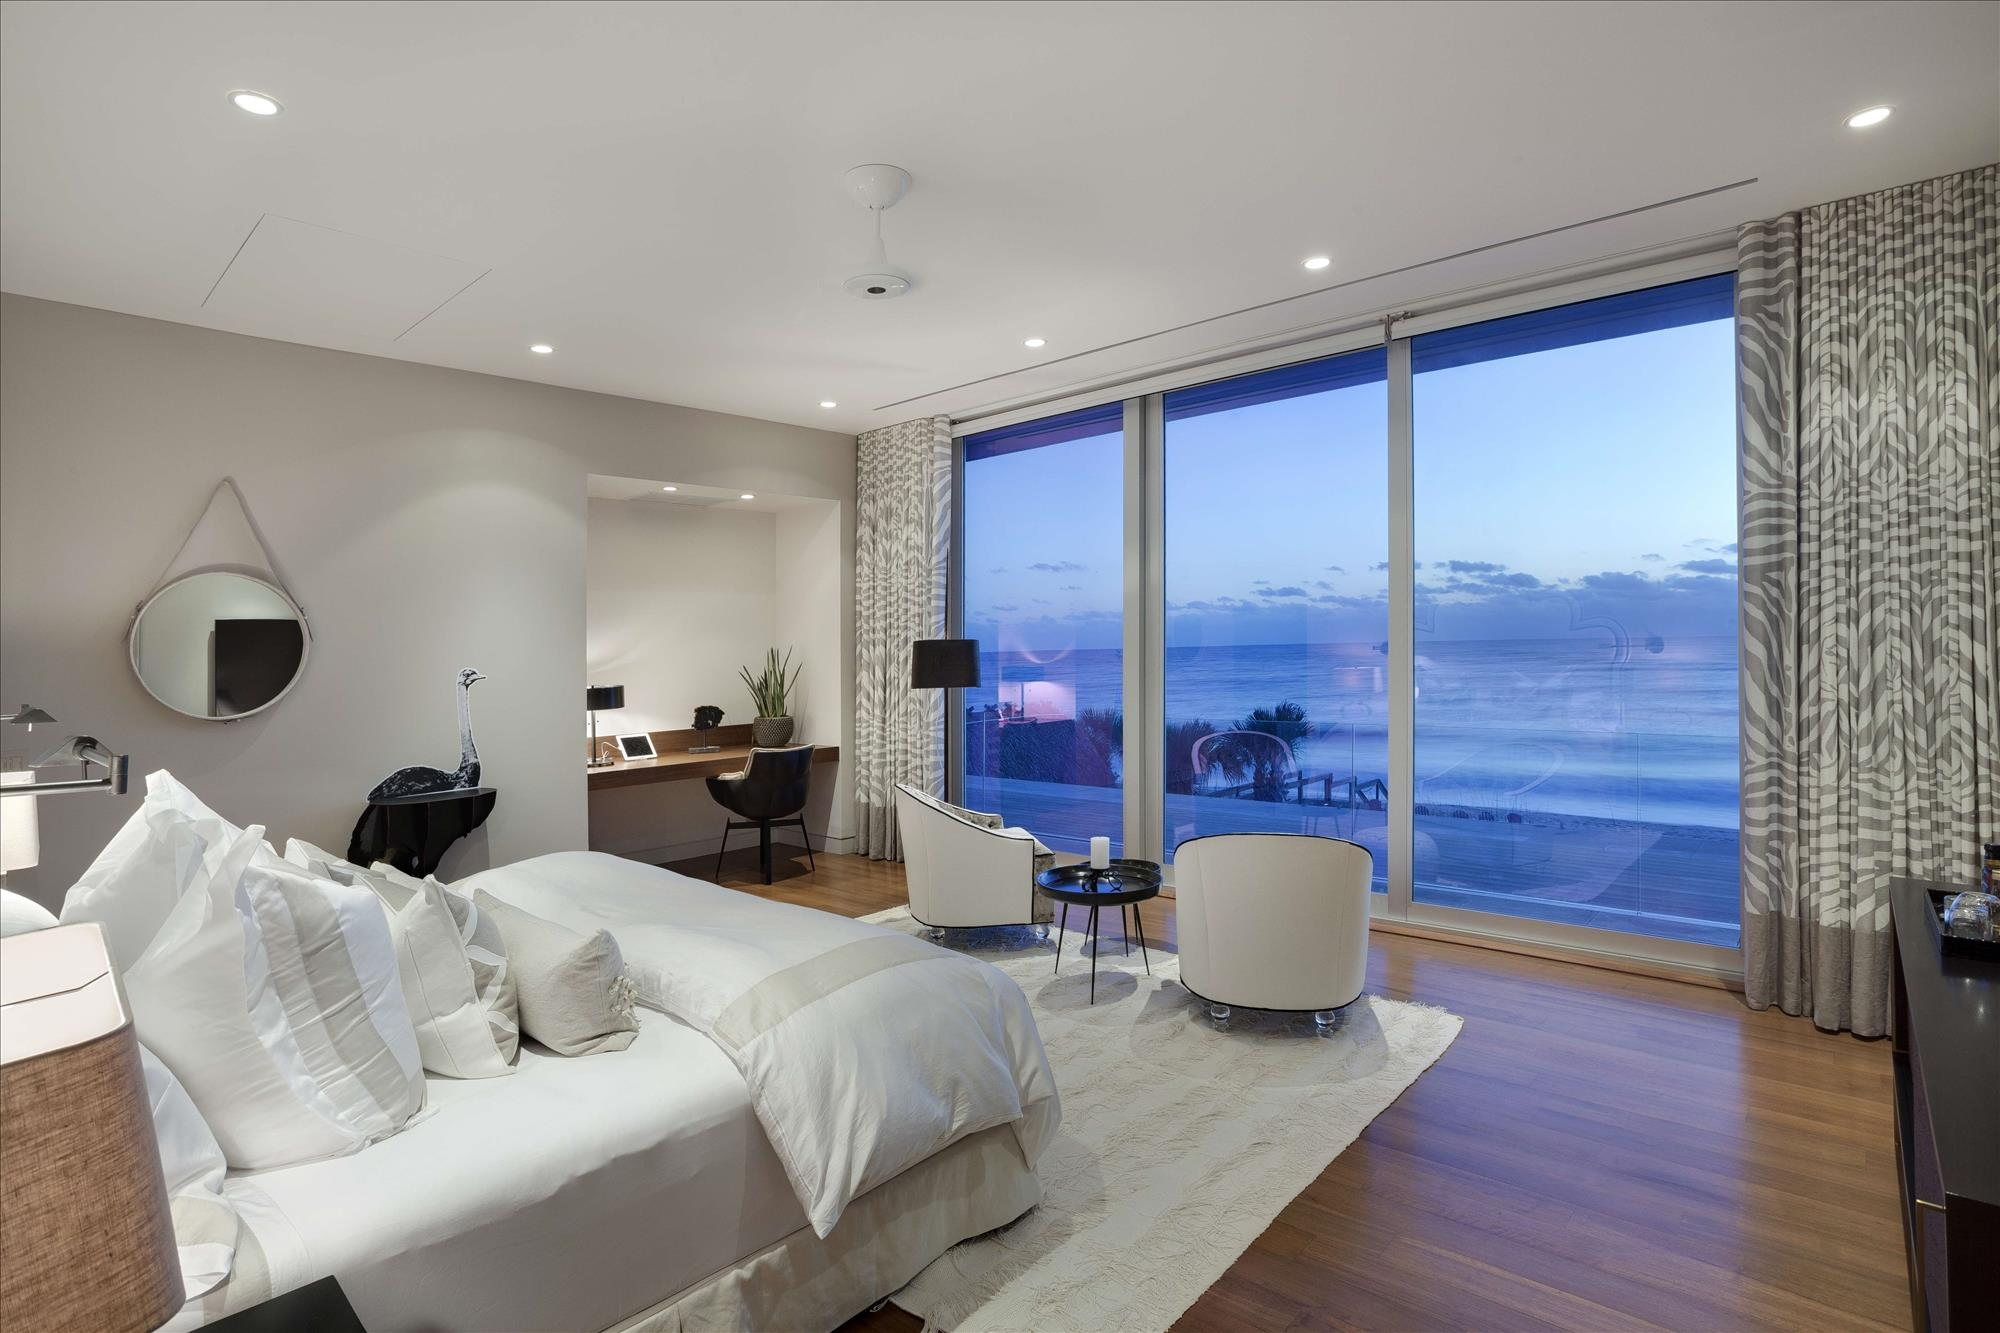 amazing ocean views Bedrooms with Amazing Ocean Views modern luxury home on ocean drive 17